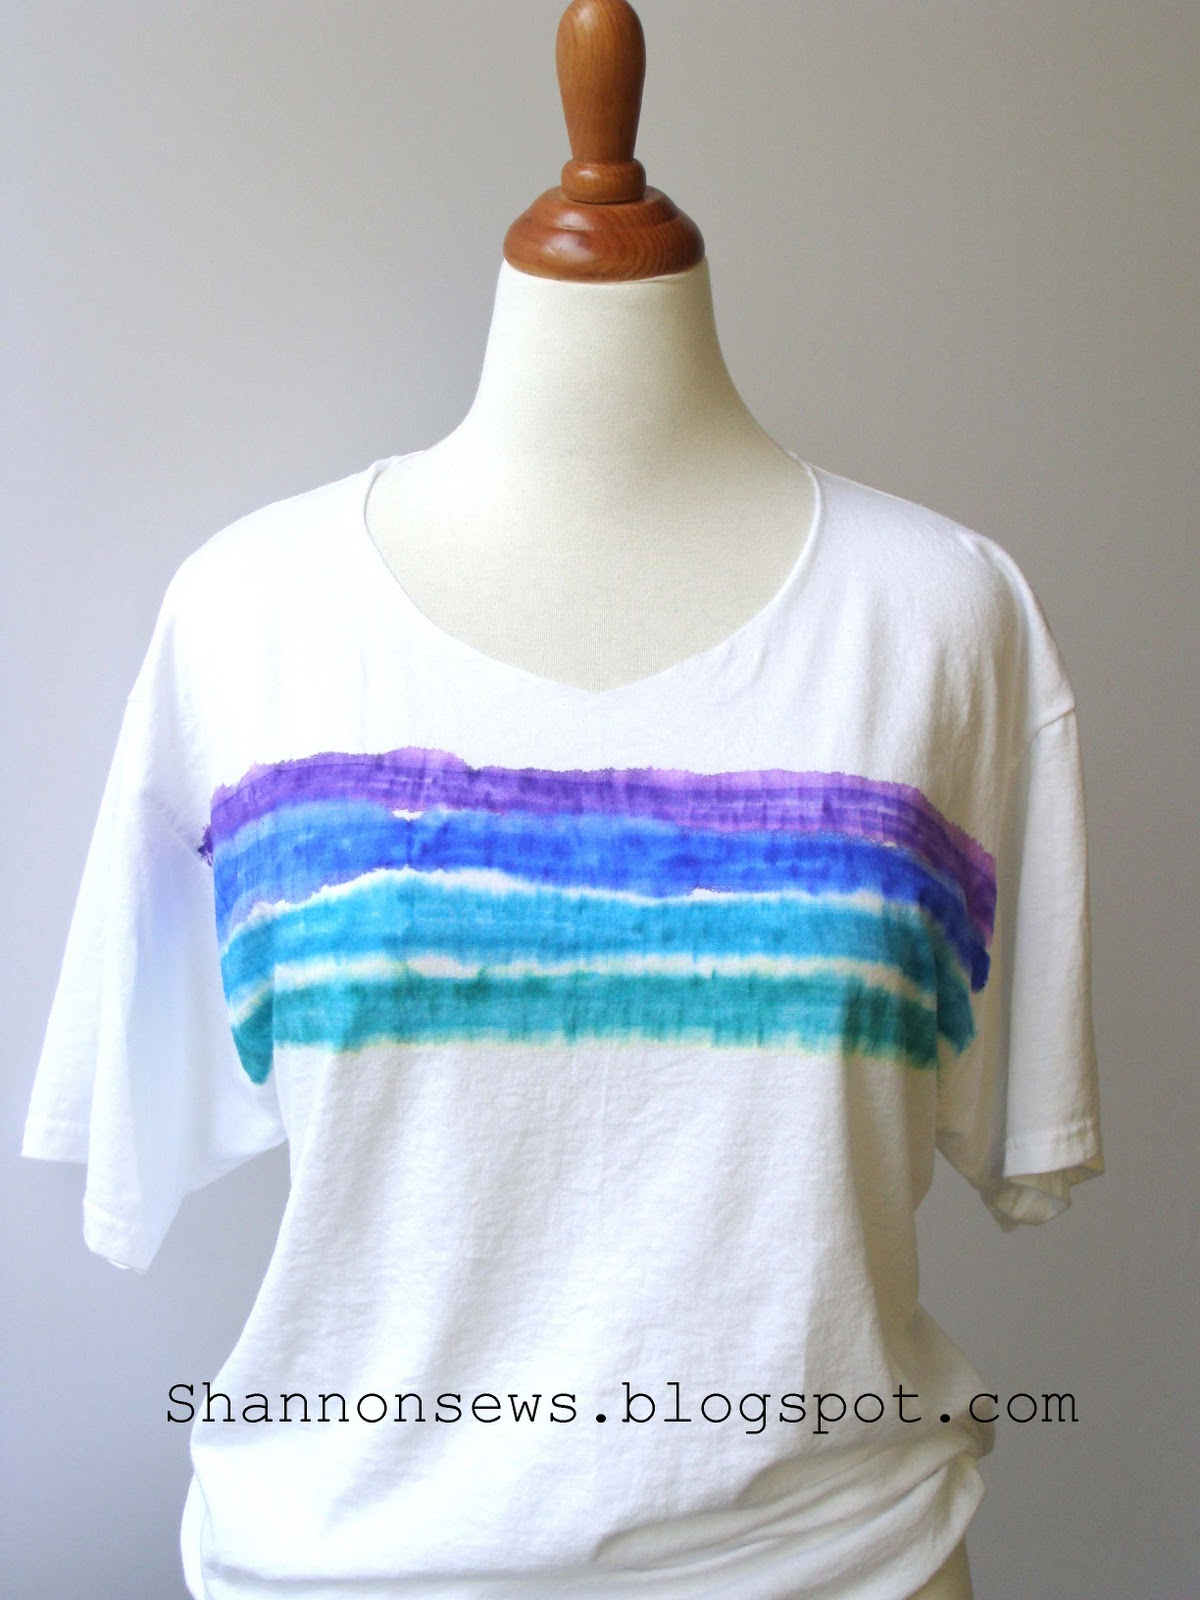 Design t shirt easy - Sewing Tutorials Crafts Diy Handmade Shannon Sews Blog For Shannon Sorensen Designs